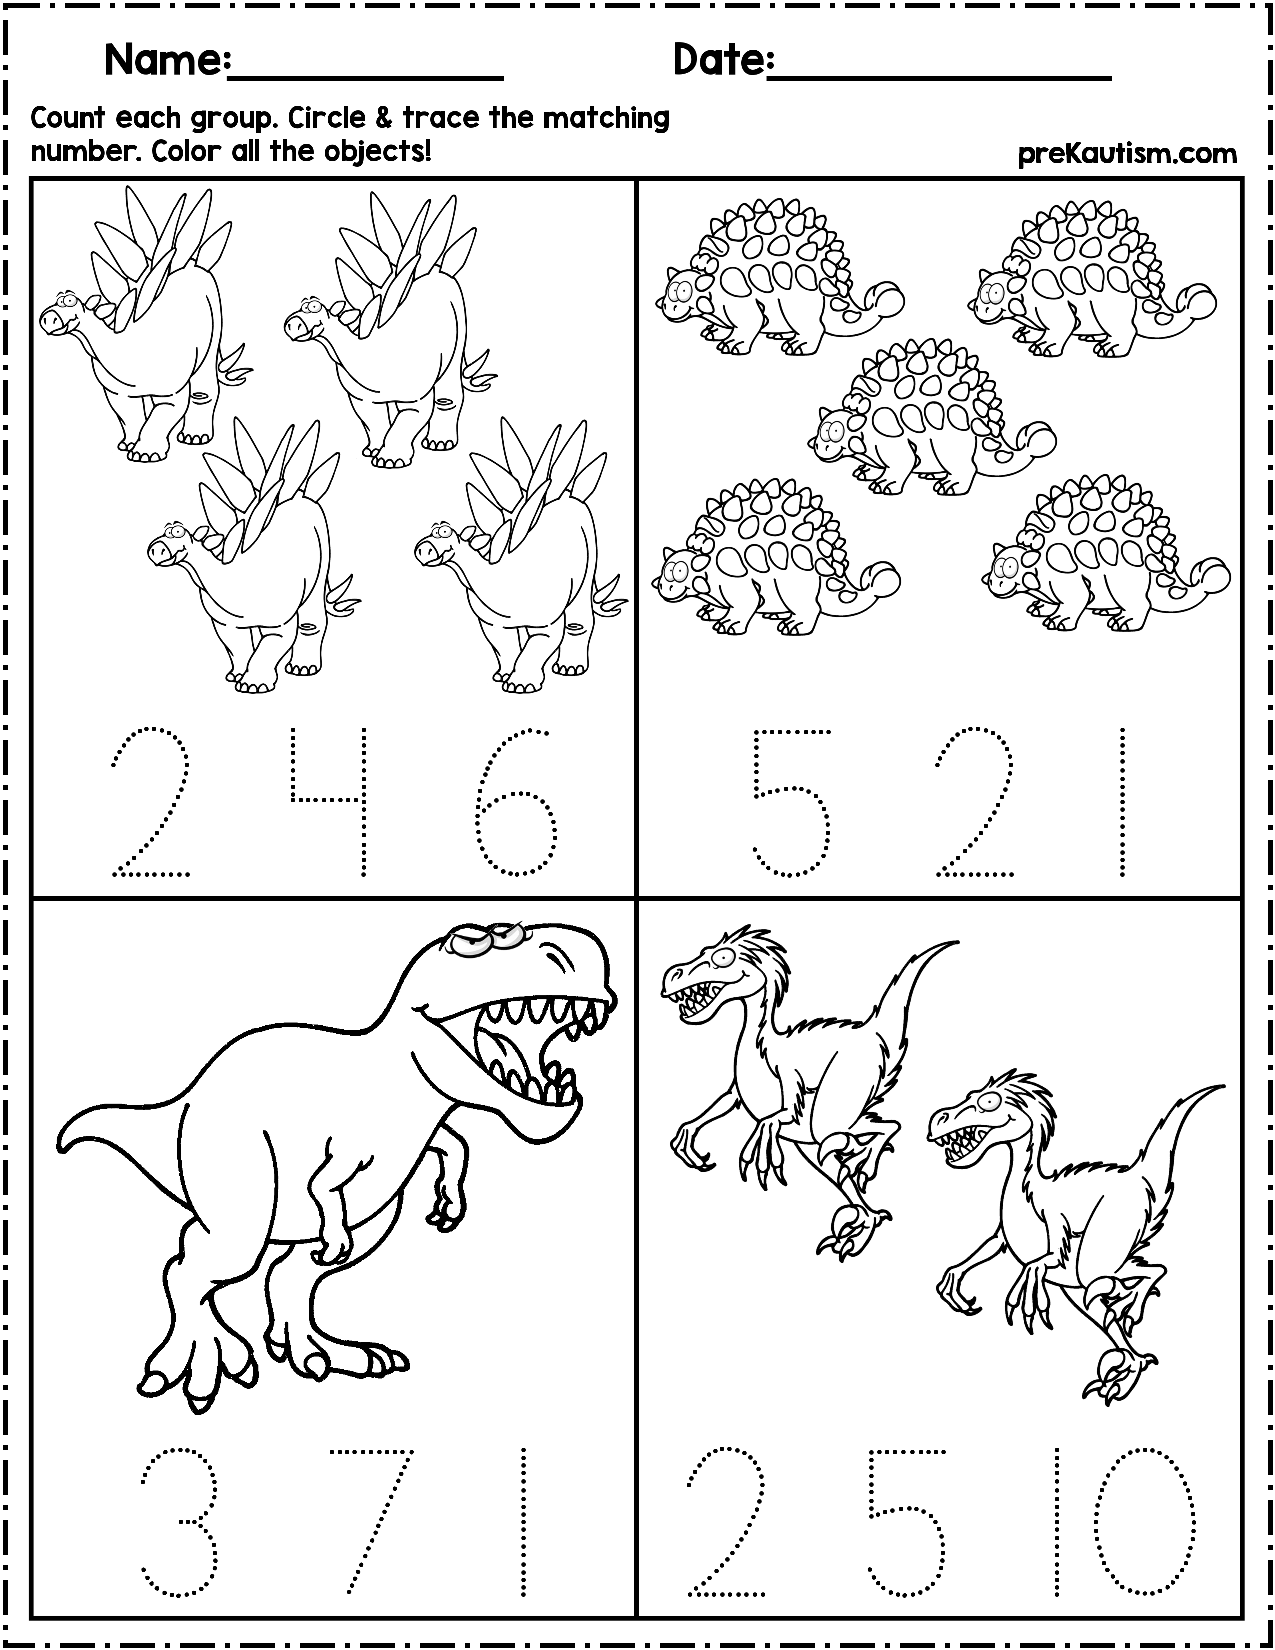 Dinosaur Counting Worksheet Preschool